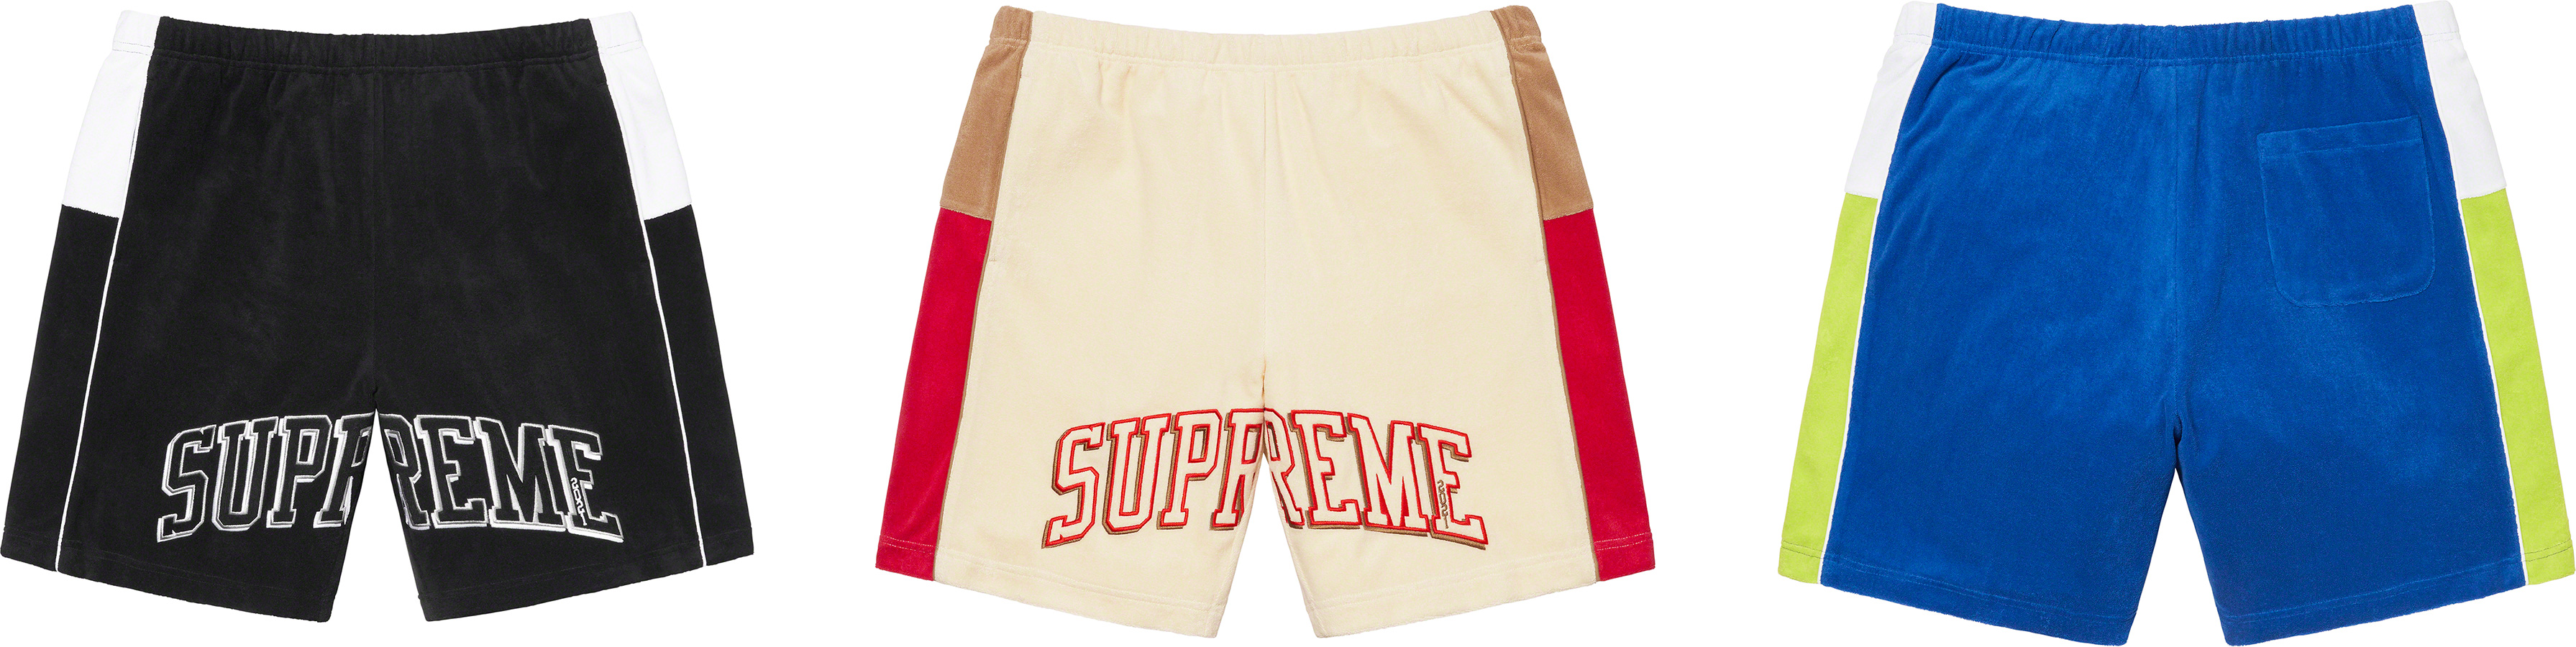 supreme-21ss-spring-summer-terry-basketball-short